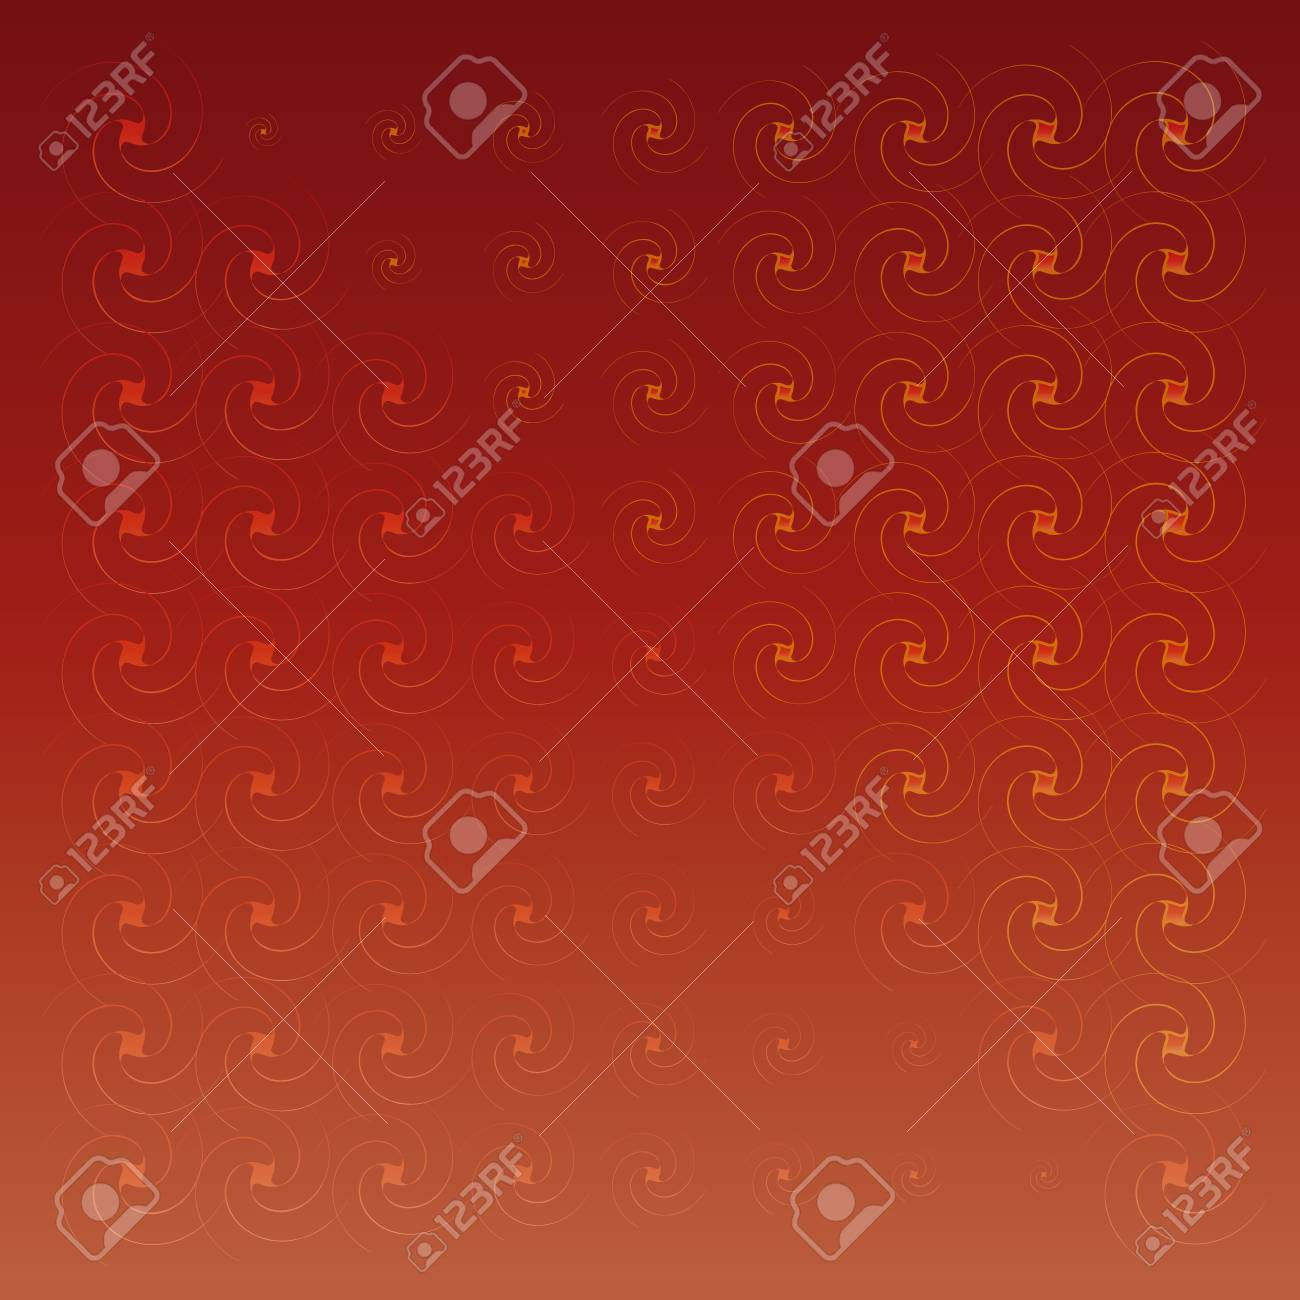 Abstract background for packaging, posters, web, application, print, and for various uses in advertising Stock Vector - 18911356